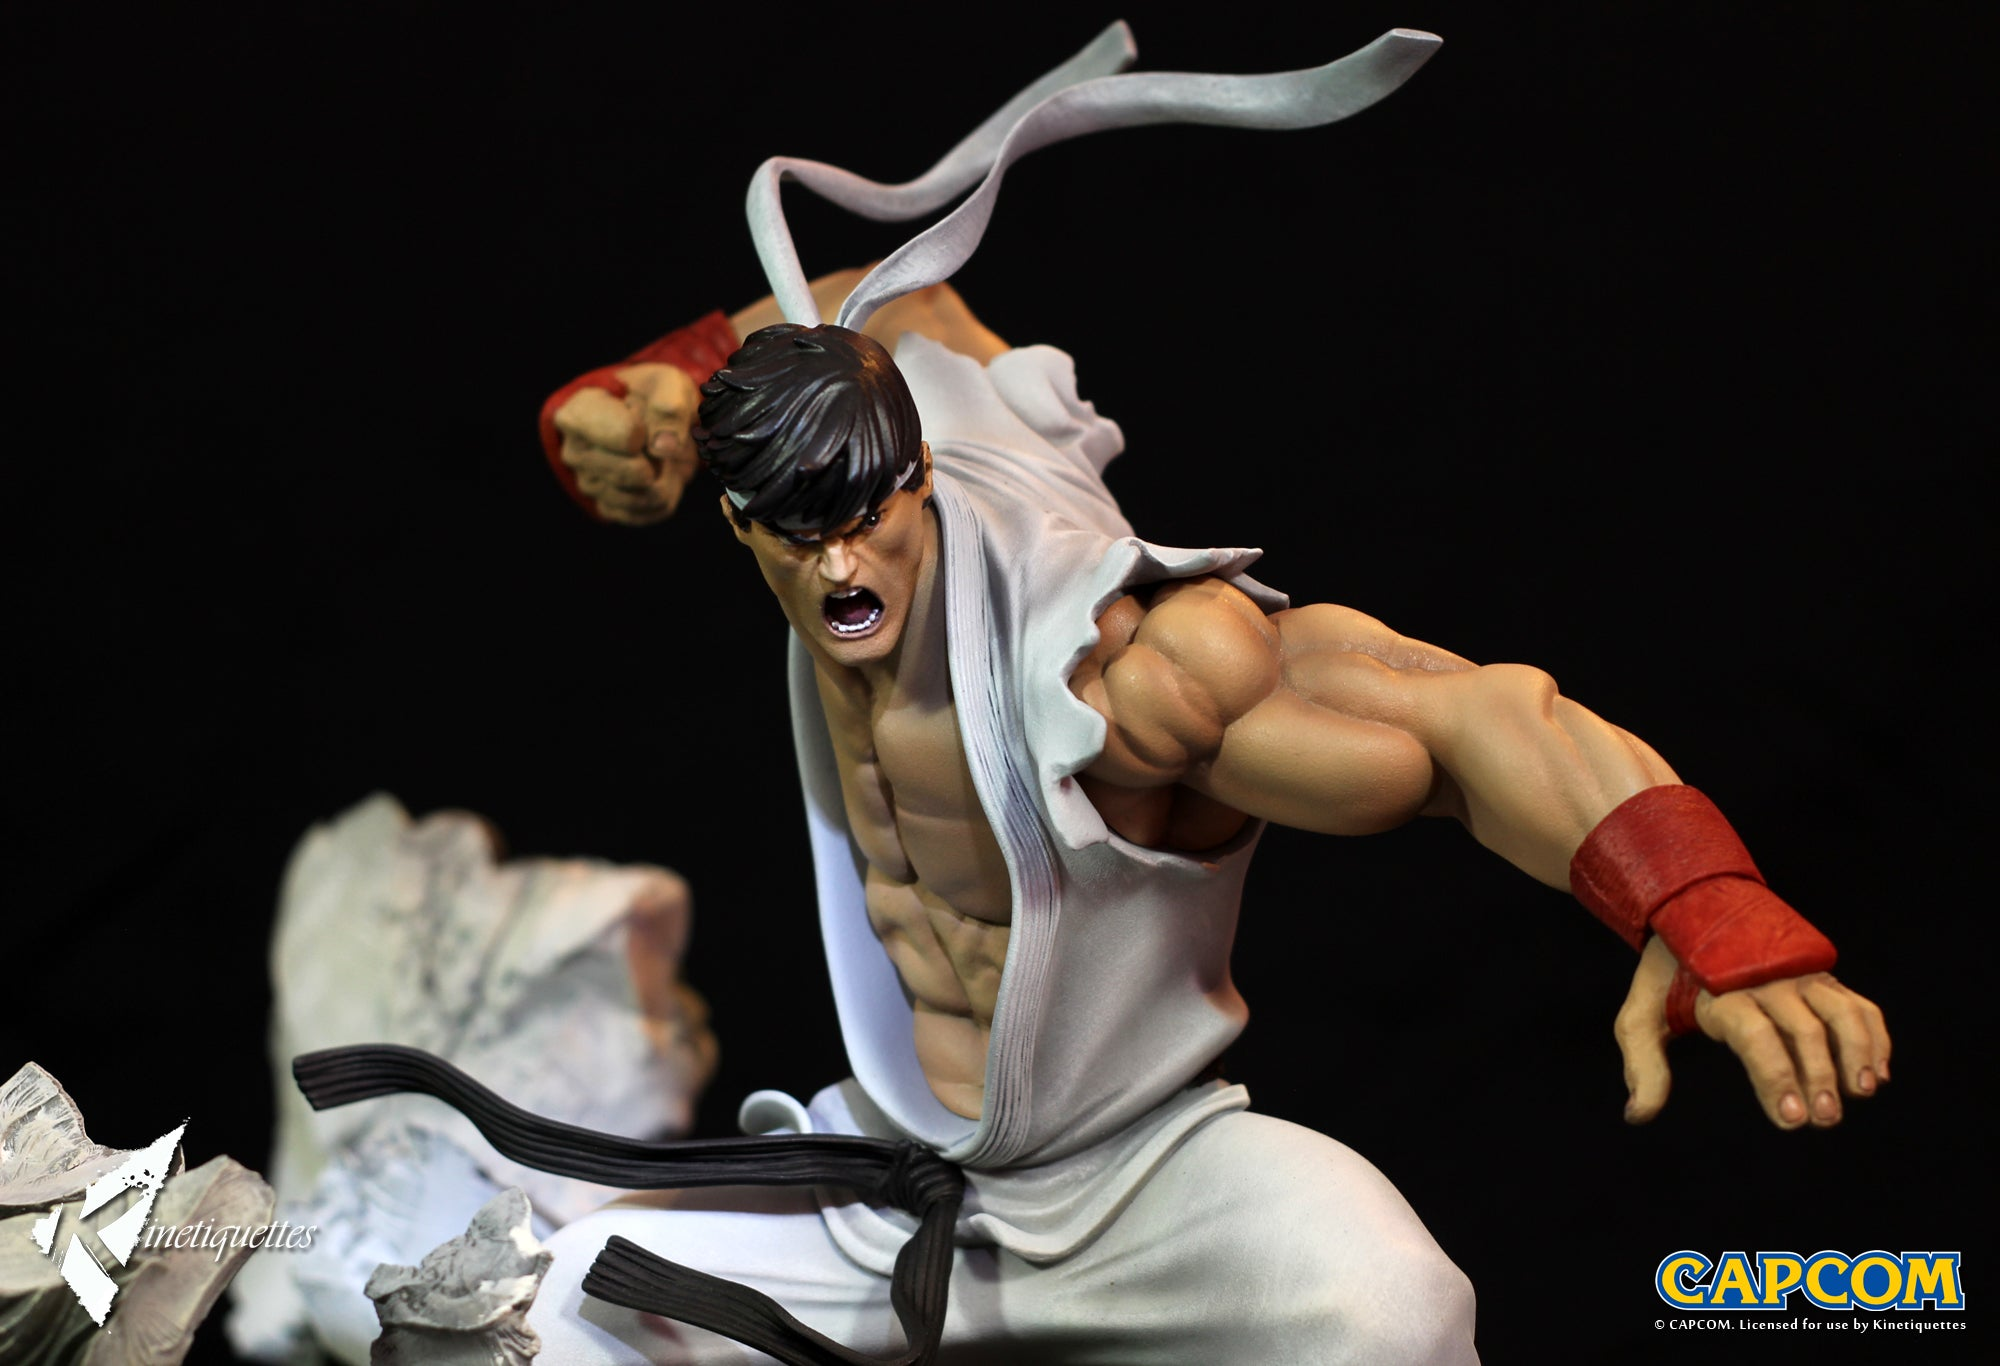 Kinetiquettes - Battle of the Brothers - Street Fighter - Ryu 1/6 Scale Diorama